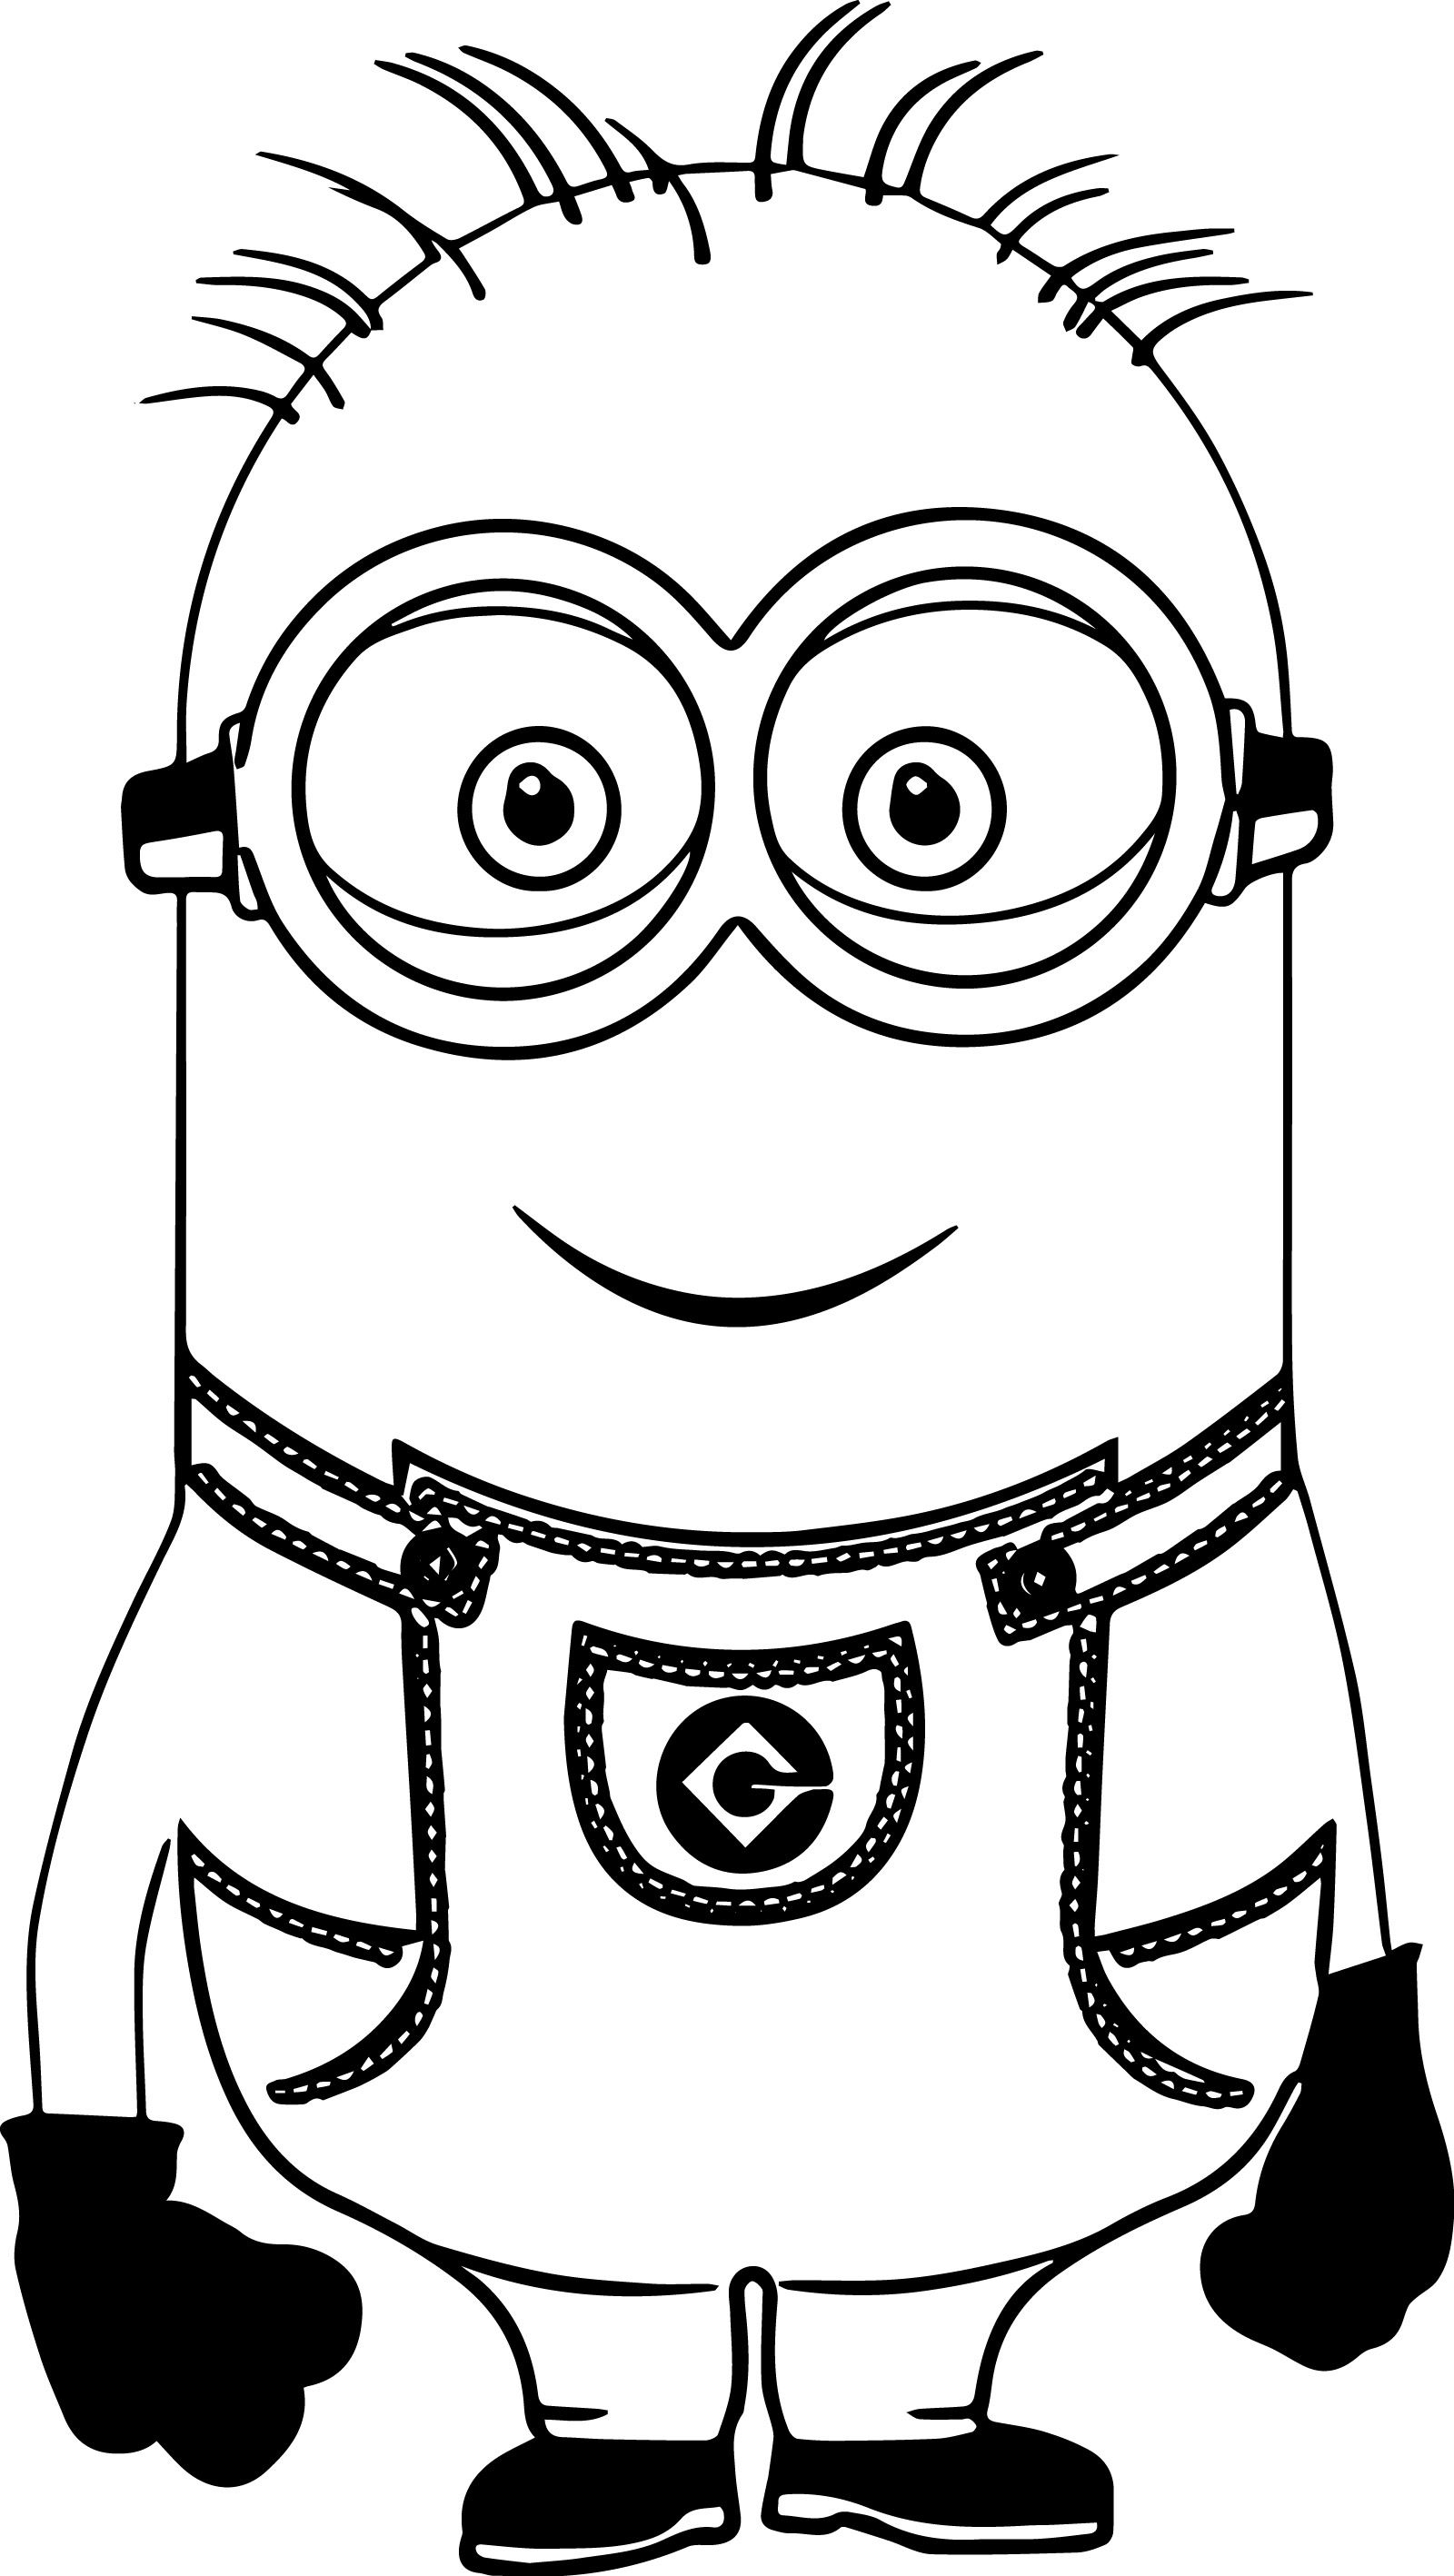 Nice Minion Smile Coloring Page Coloring Pages Bear Coloring Pages Minions